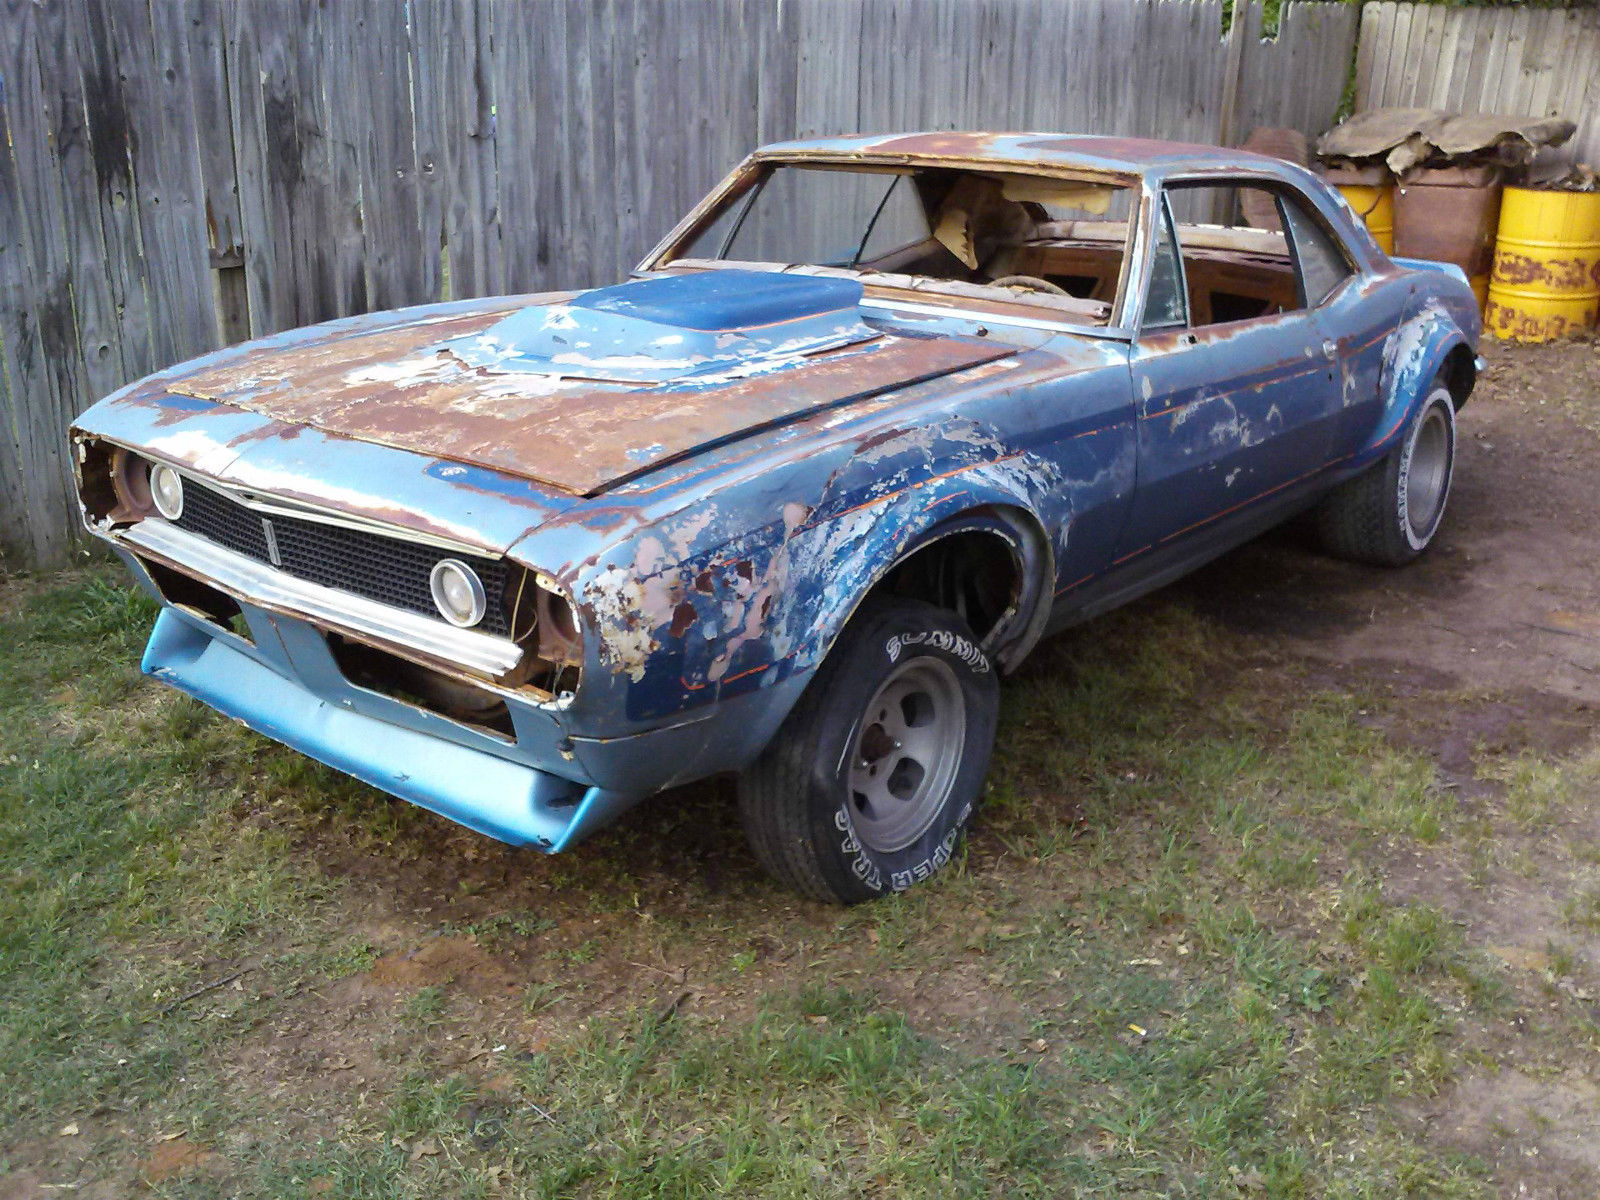 Craigslist Classic Project Cars For Sale